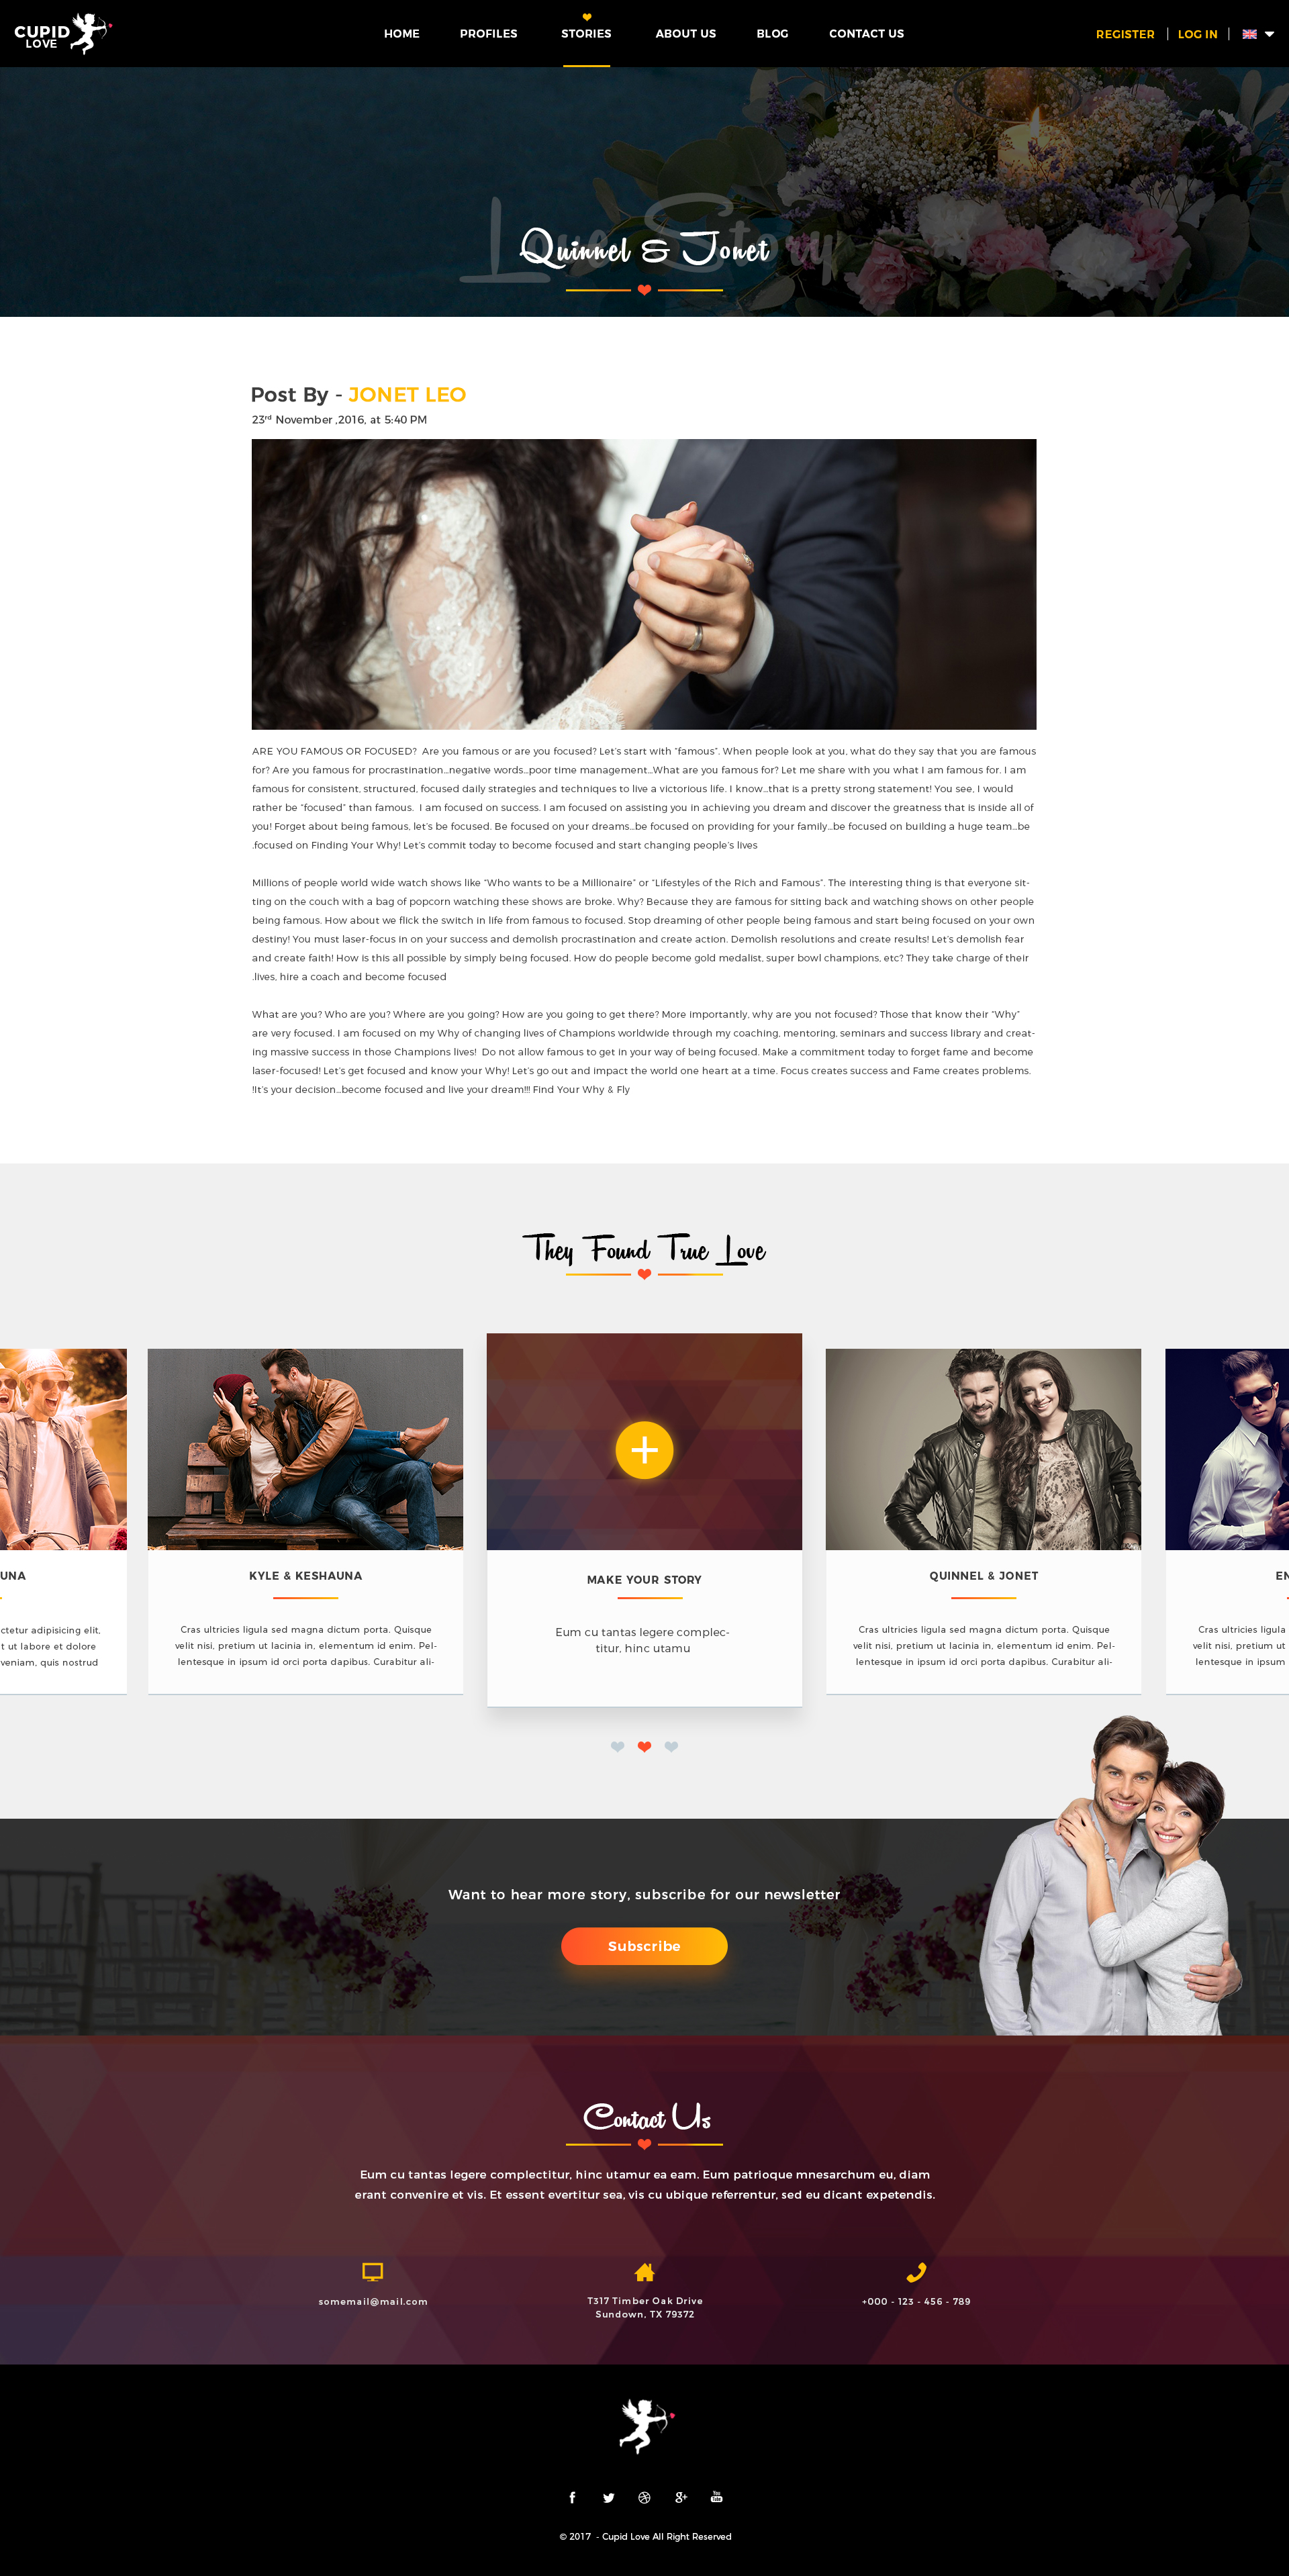 dating sites psd Photoshop psd templates landing page templates dating design education electronics dreamweaver web site templates dreamweaver templates website graphics.